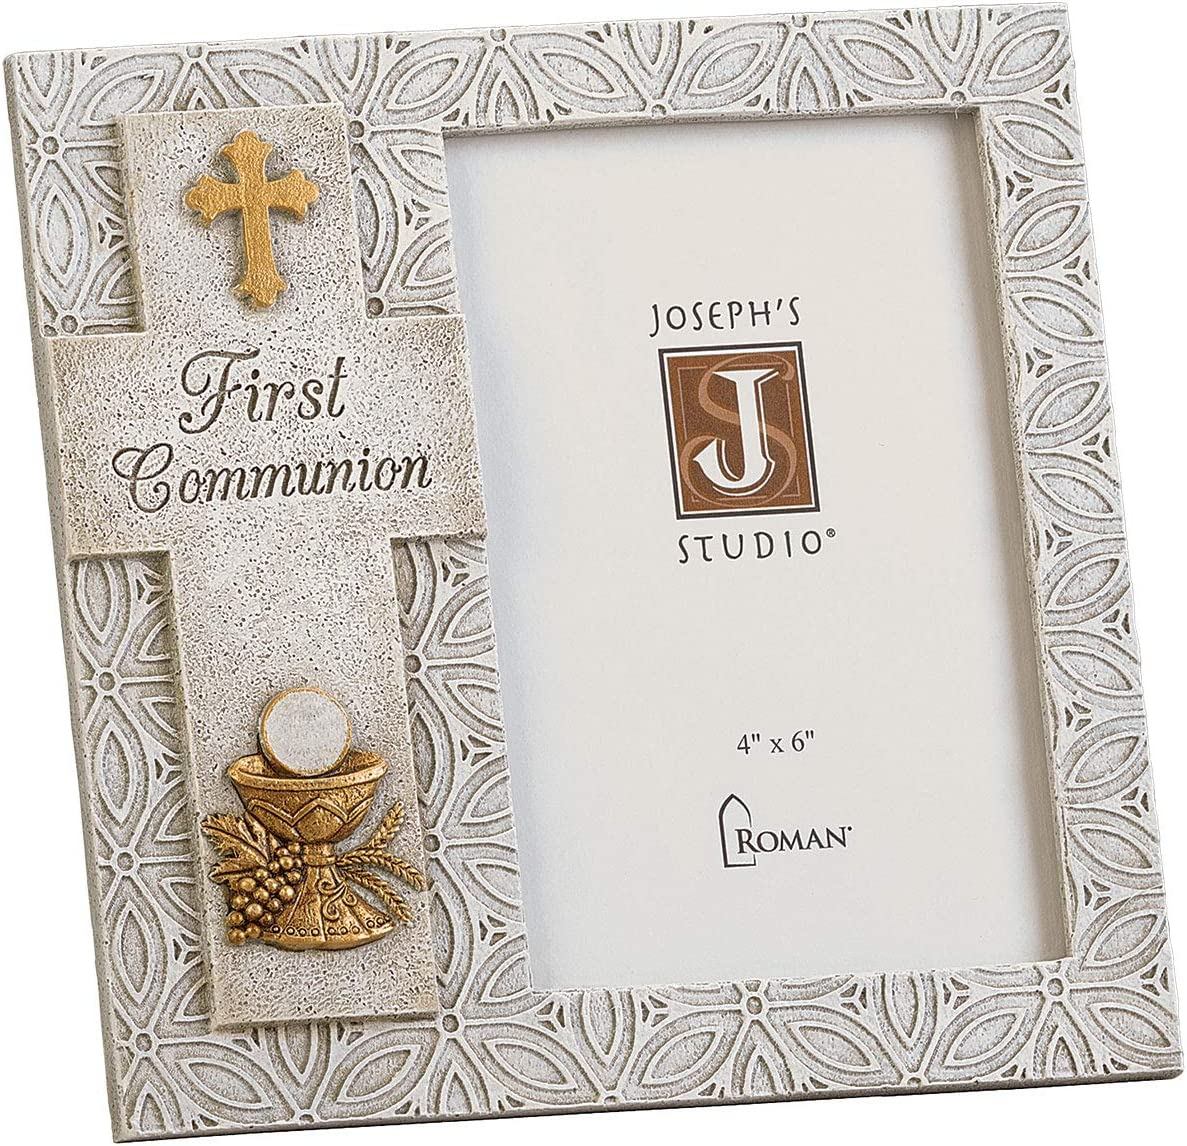 Joseph S Studio By Roman First Communion Picture Frame For 4 X 6 Photo Vertical Tabletop Or Desk Display 7 25 H Resin And Stone Decorative Collection Durable Long Lasting Amazon Com